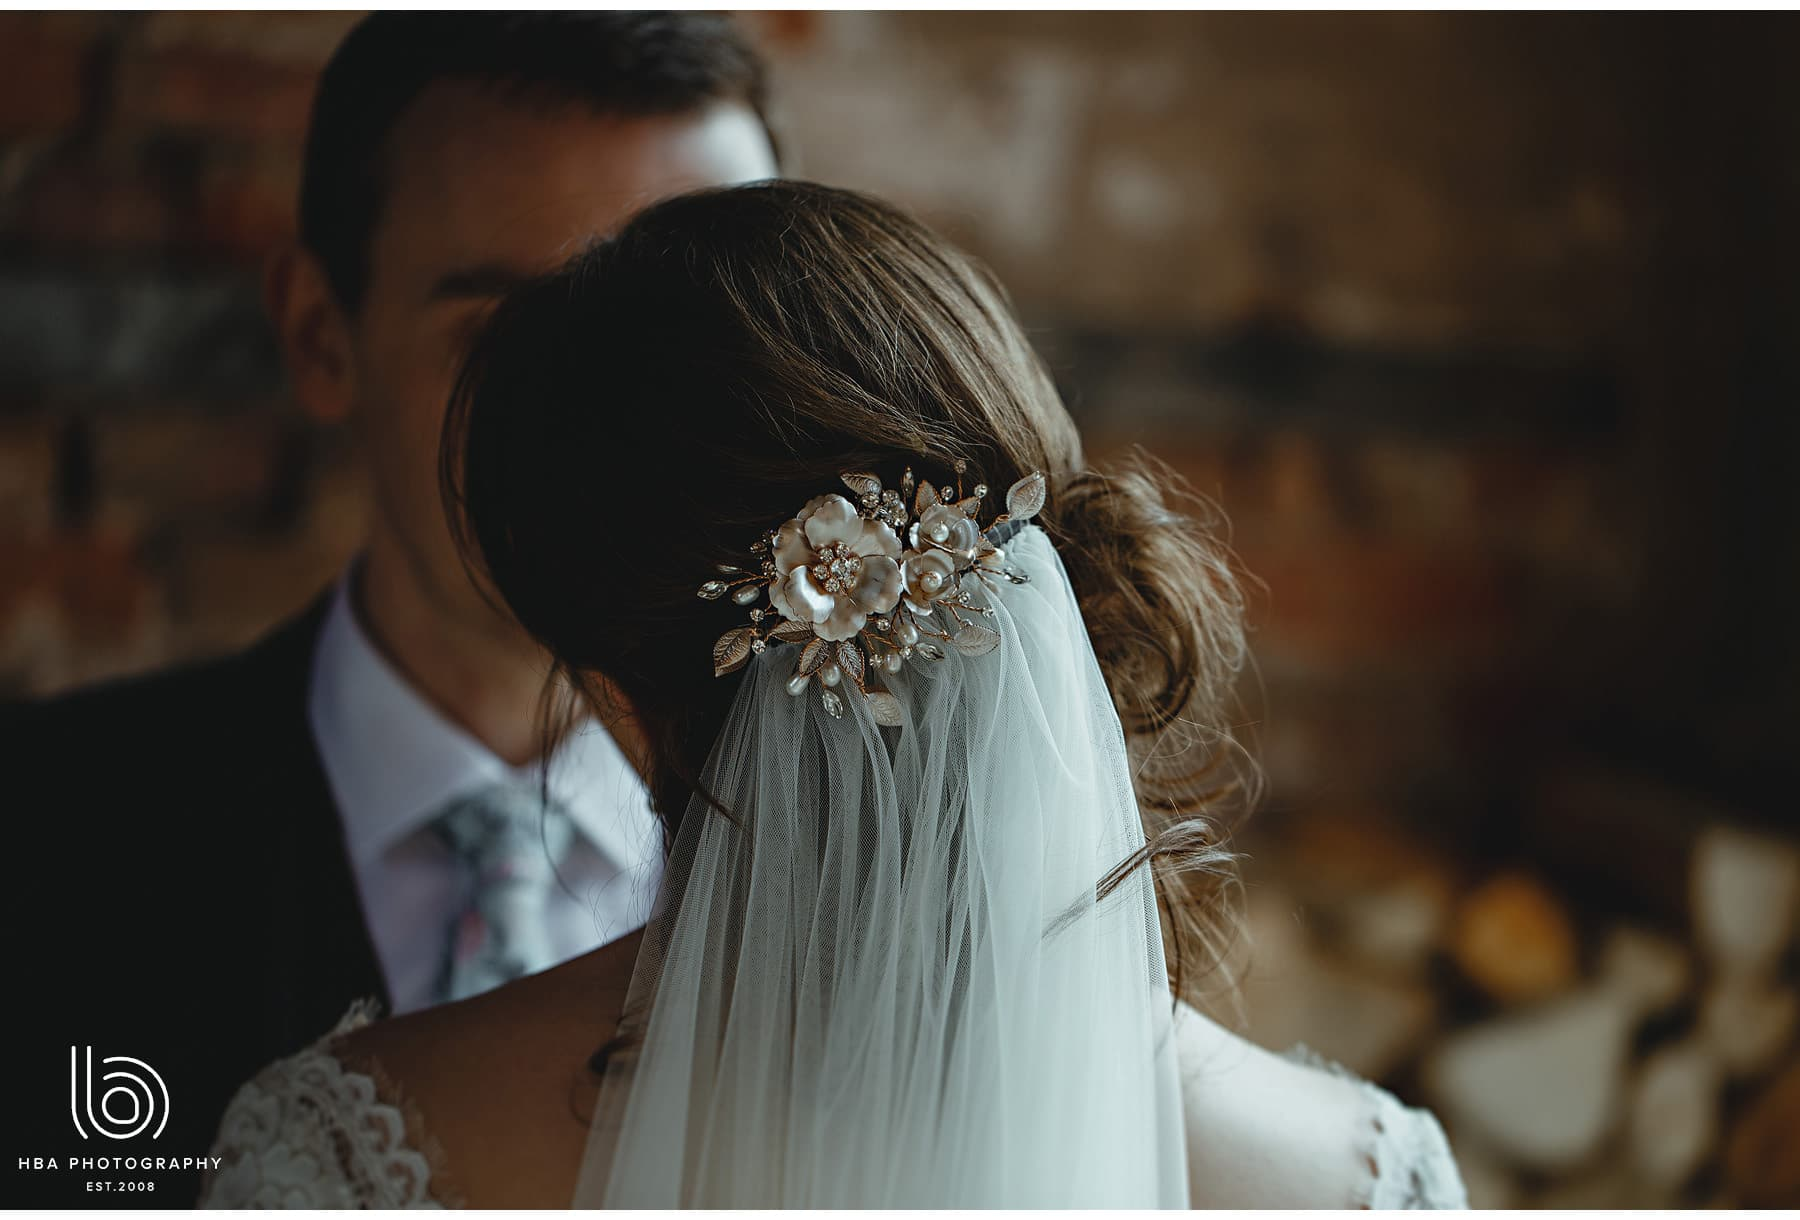 the bride's hair accessory